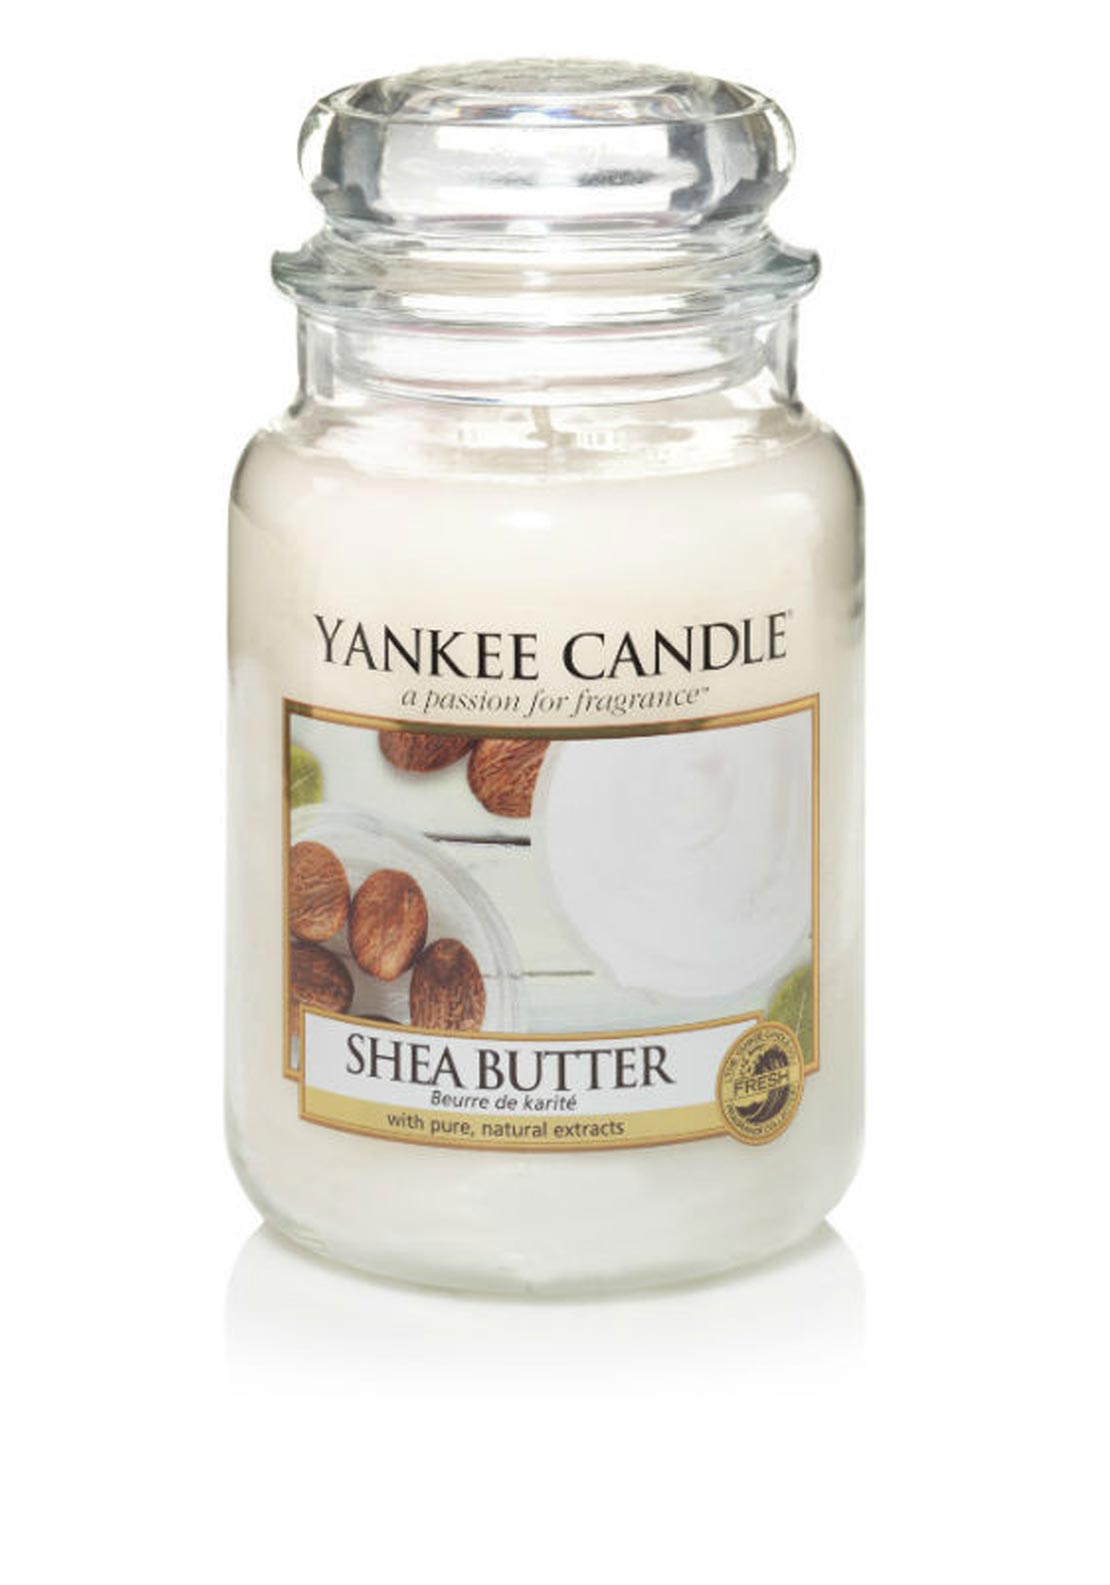 Yankee Candle Large Classic Jar, Shea Butter